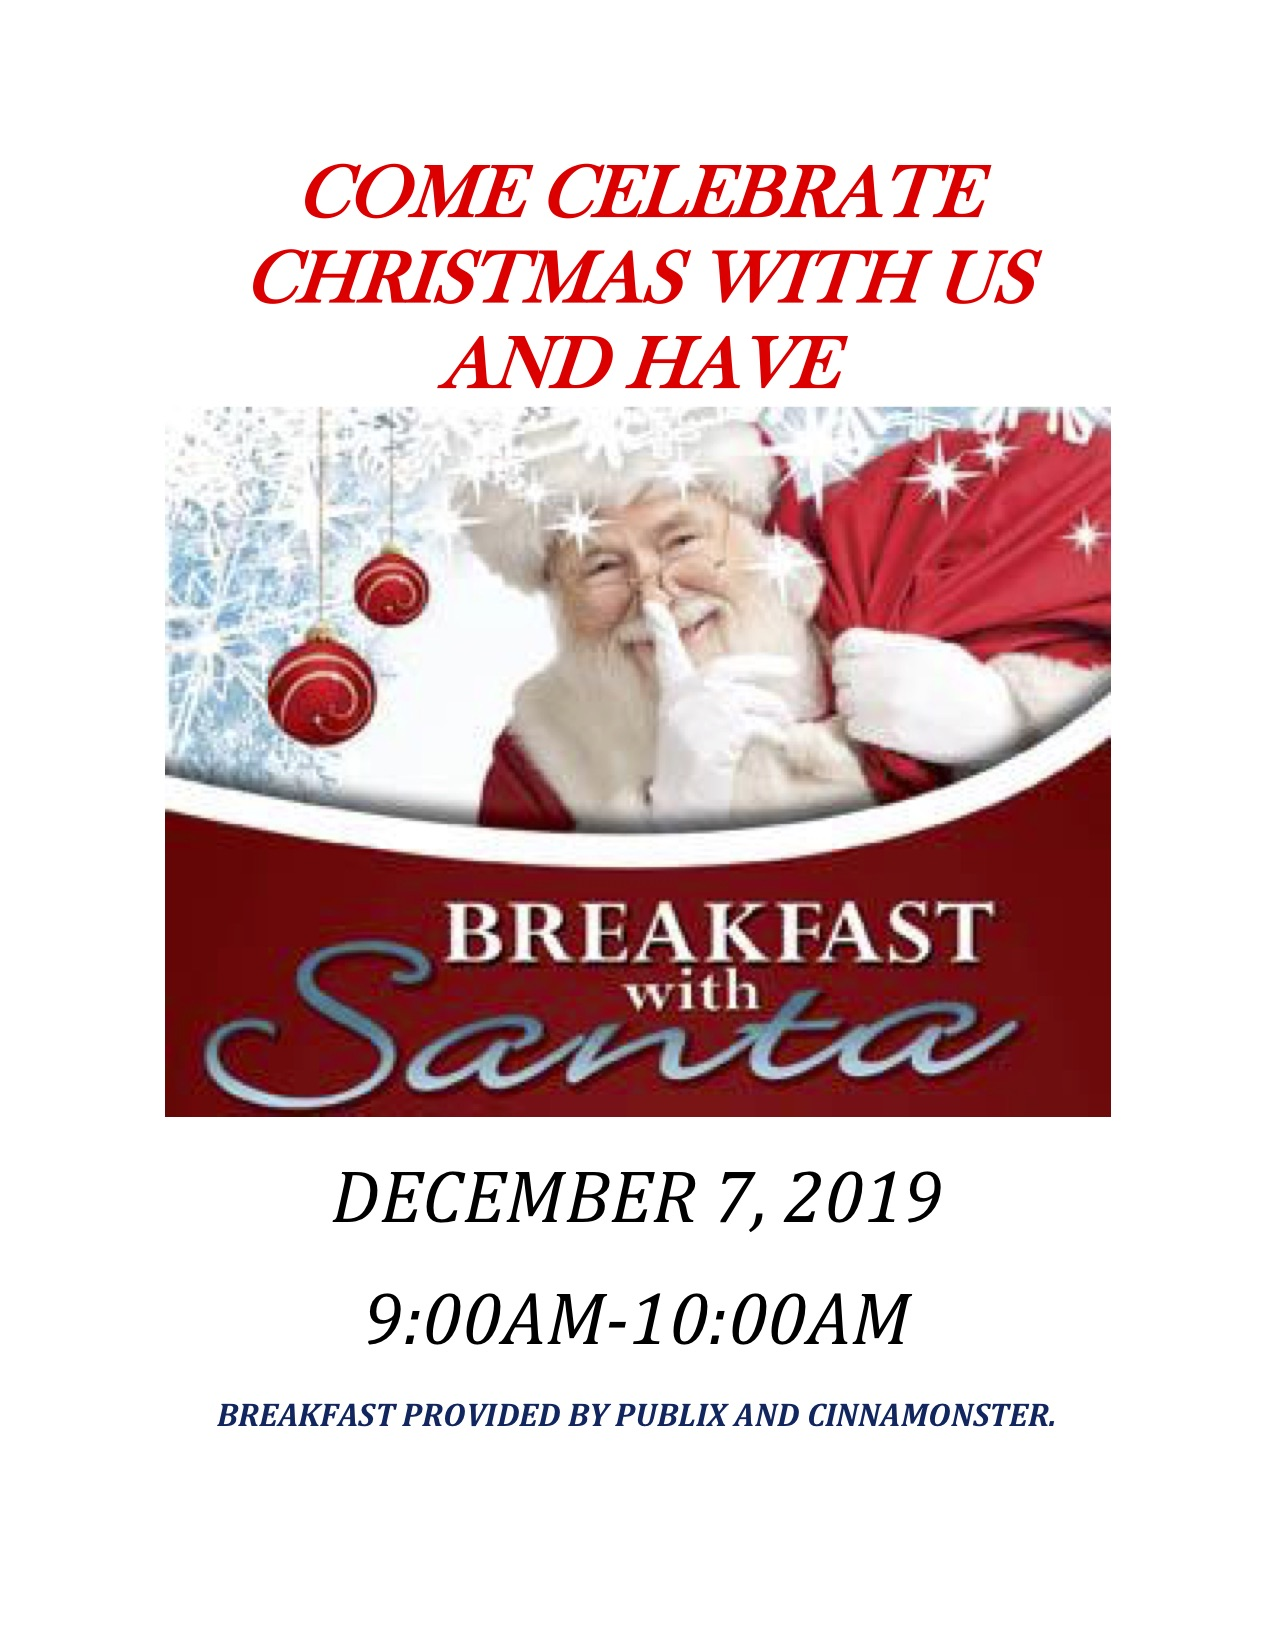 breakfast with santa information at Virginia Center Commons